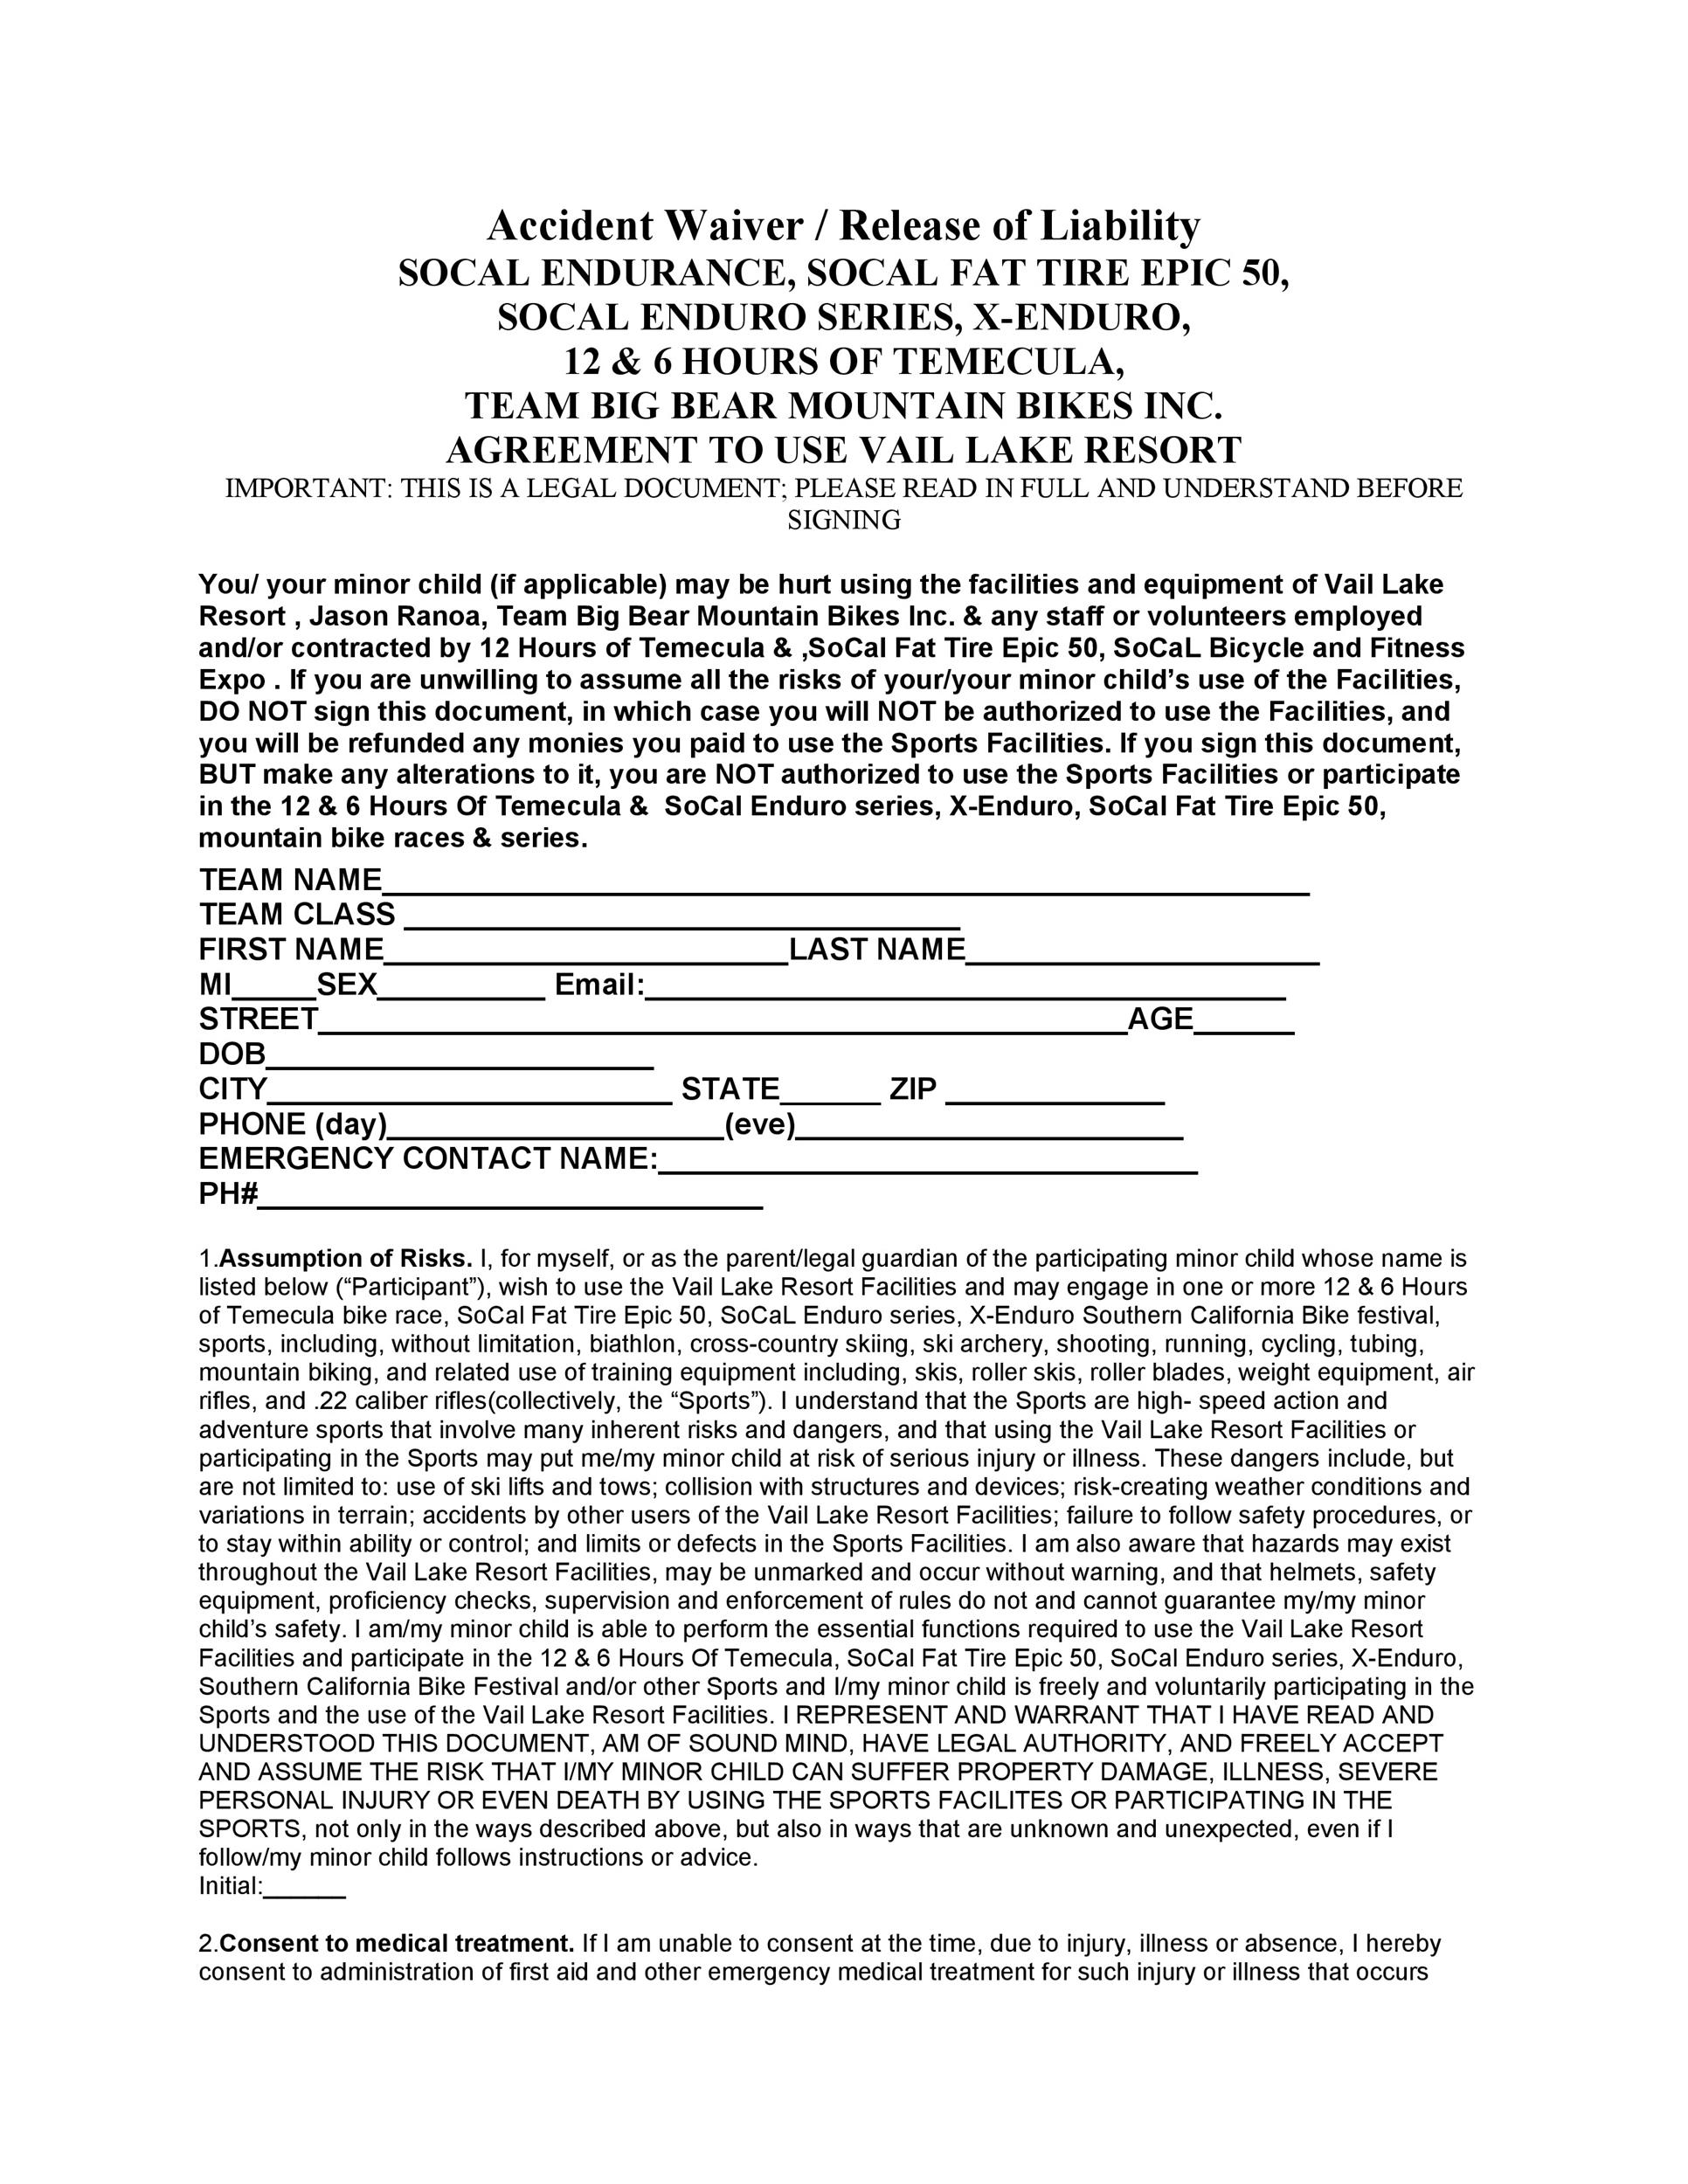 Free release of liability form 14